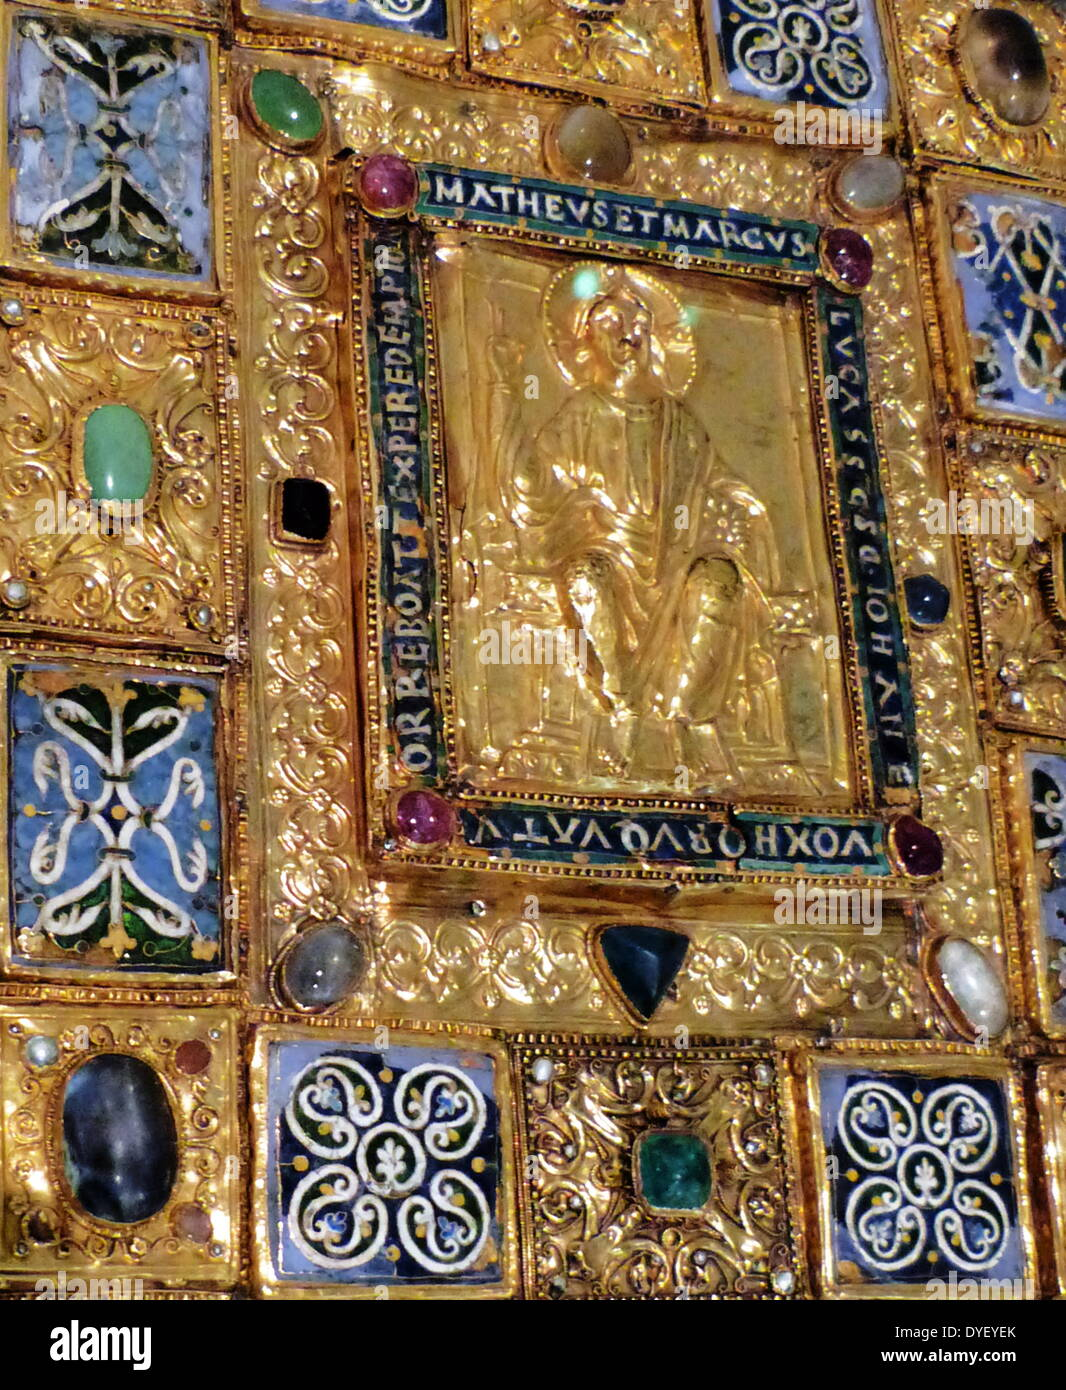 Bejewelled religious plaque with relief image and Latin Inscription. - Stock Image